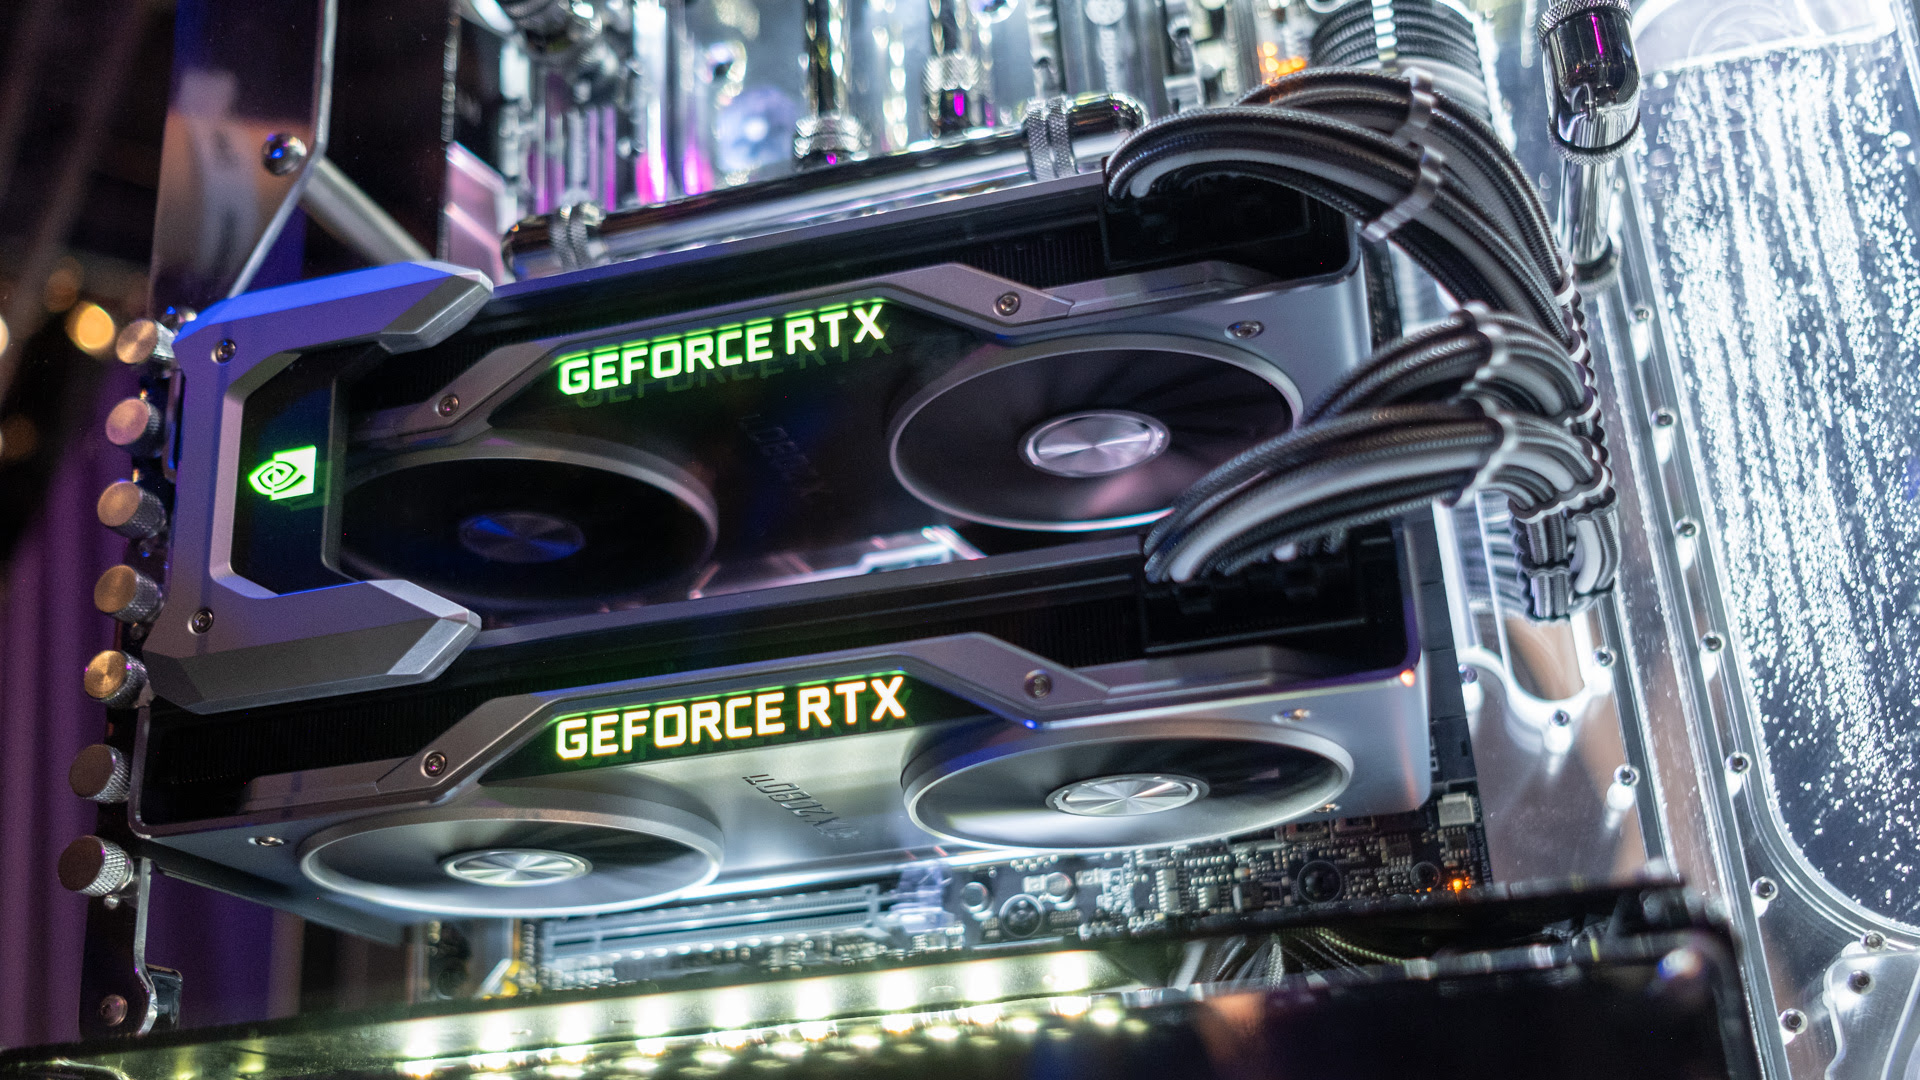 Nvidia GeForce RTX 2080 Ti launch has been delayed by a week